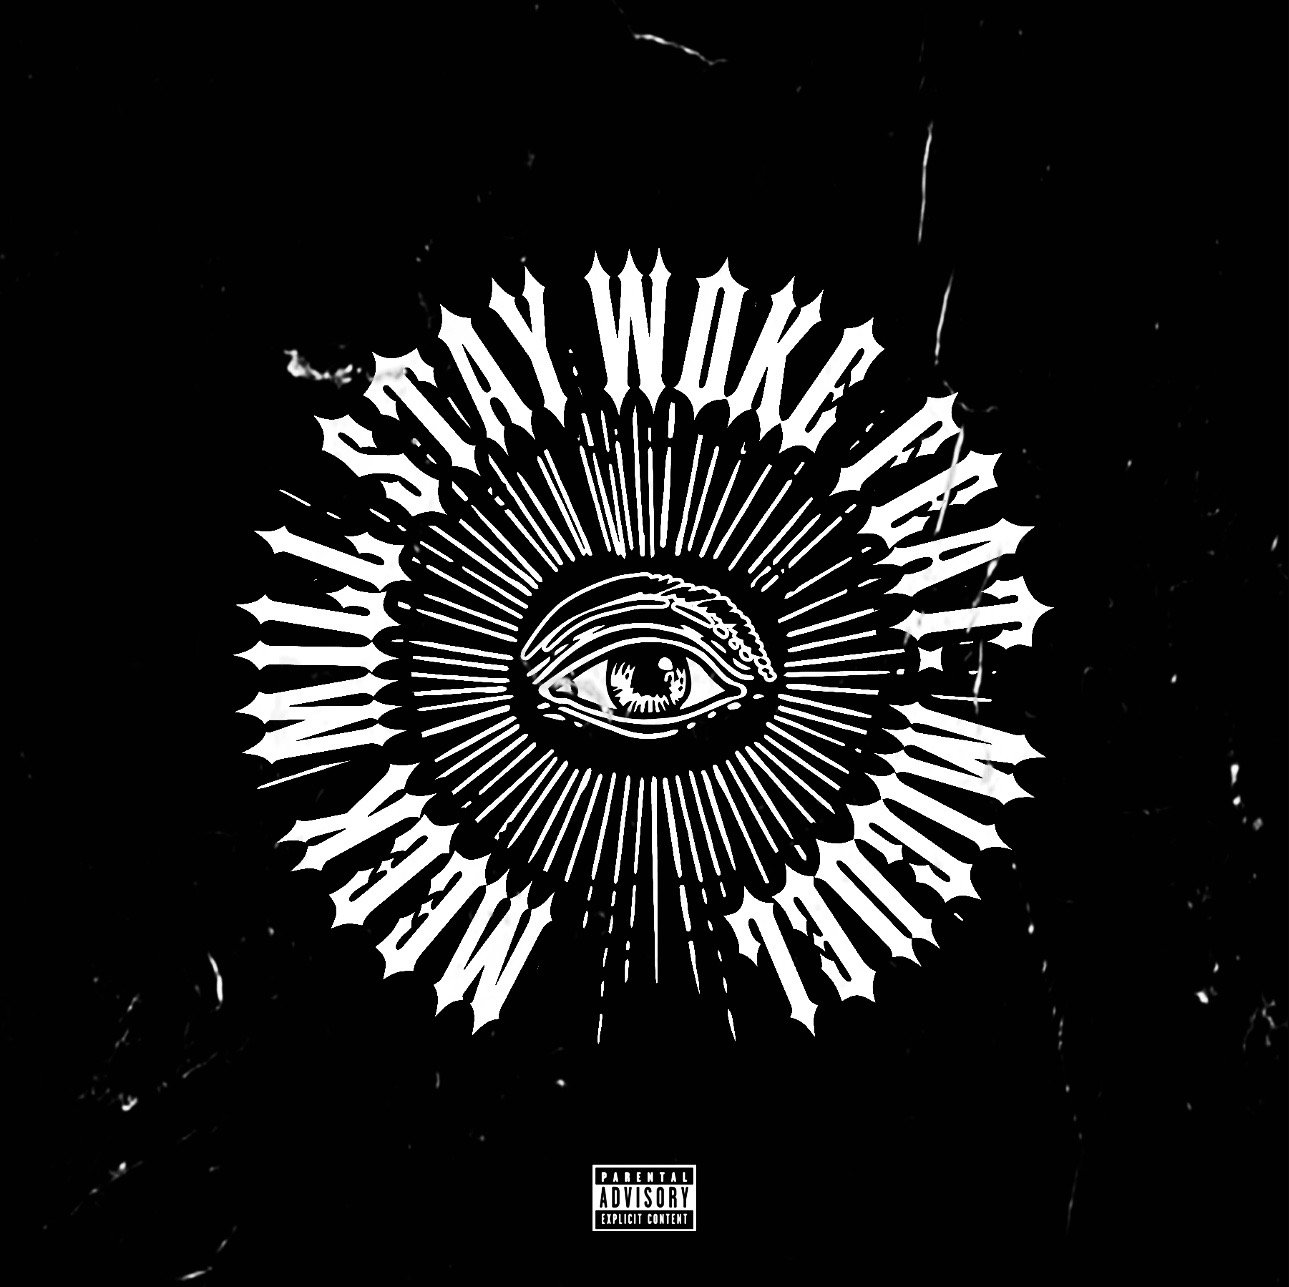 Listen to #StayWoke ft. @Miguel now on @TIDAL: https://t.co/HOk9wCaf3K https://t.co/uEJ4y5GR2t